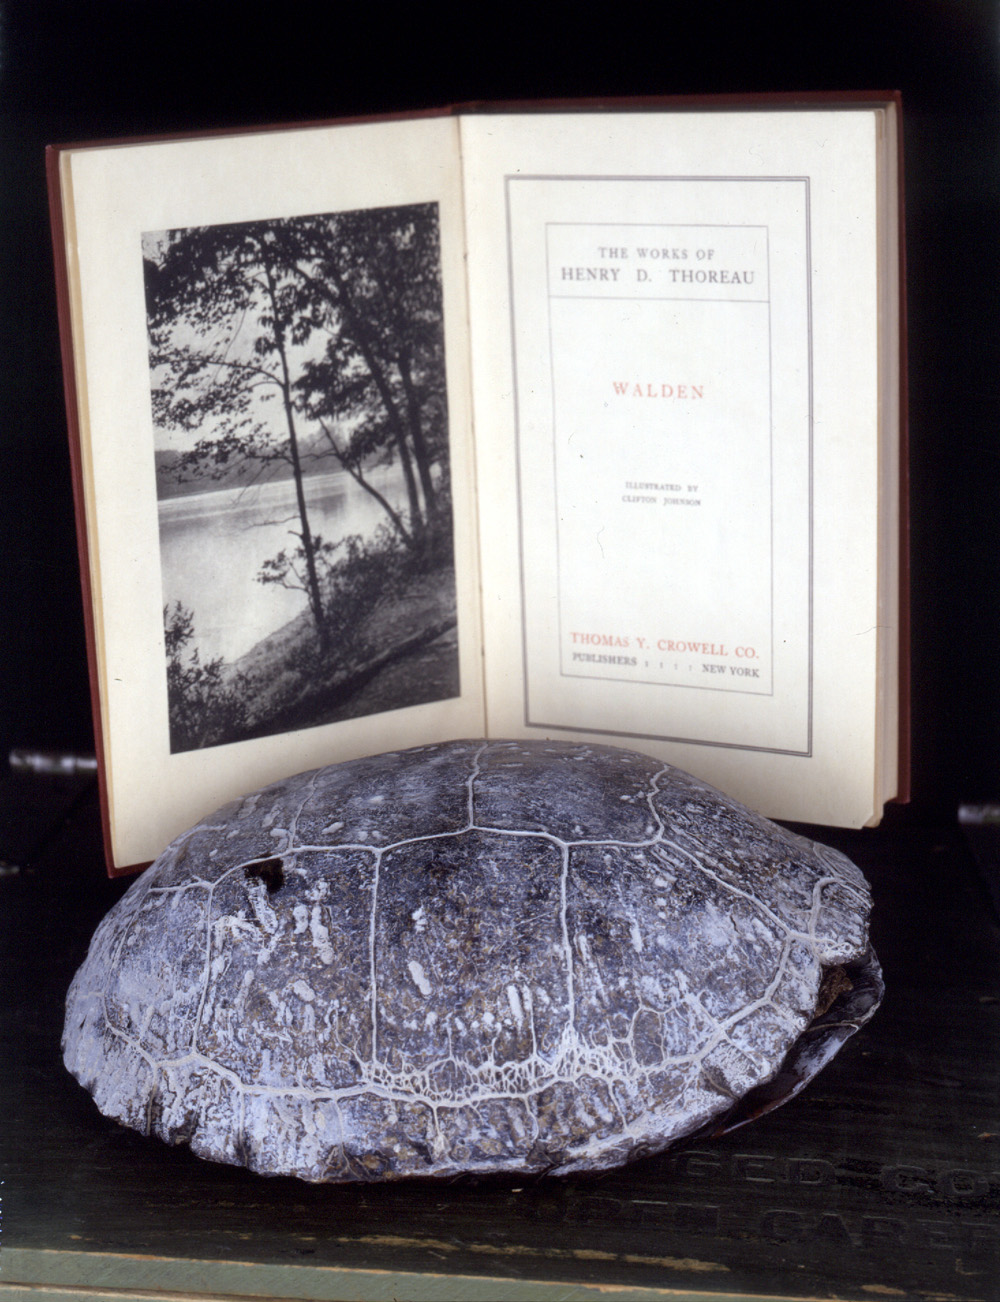 shell of turtle with copy of Walden